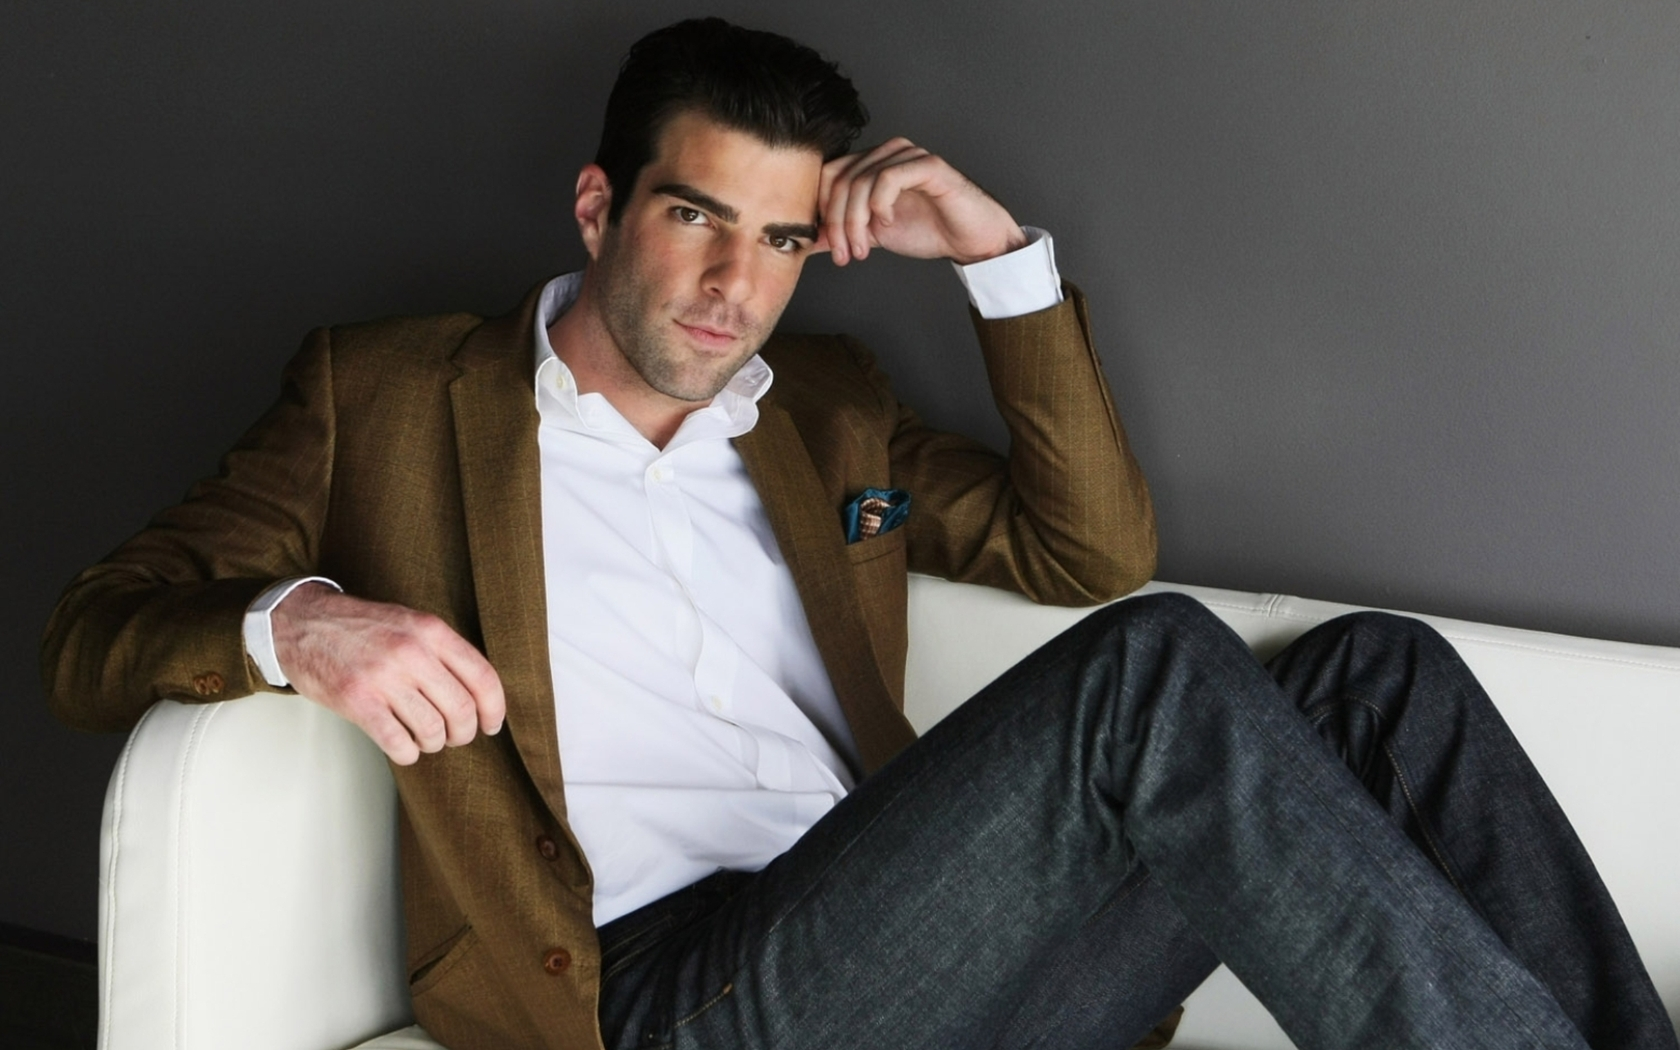 1680x1050 - Zachary Quinto Wallpapers 21